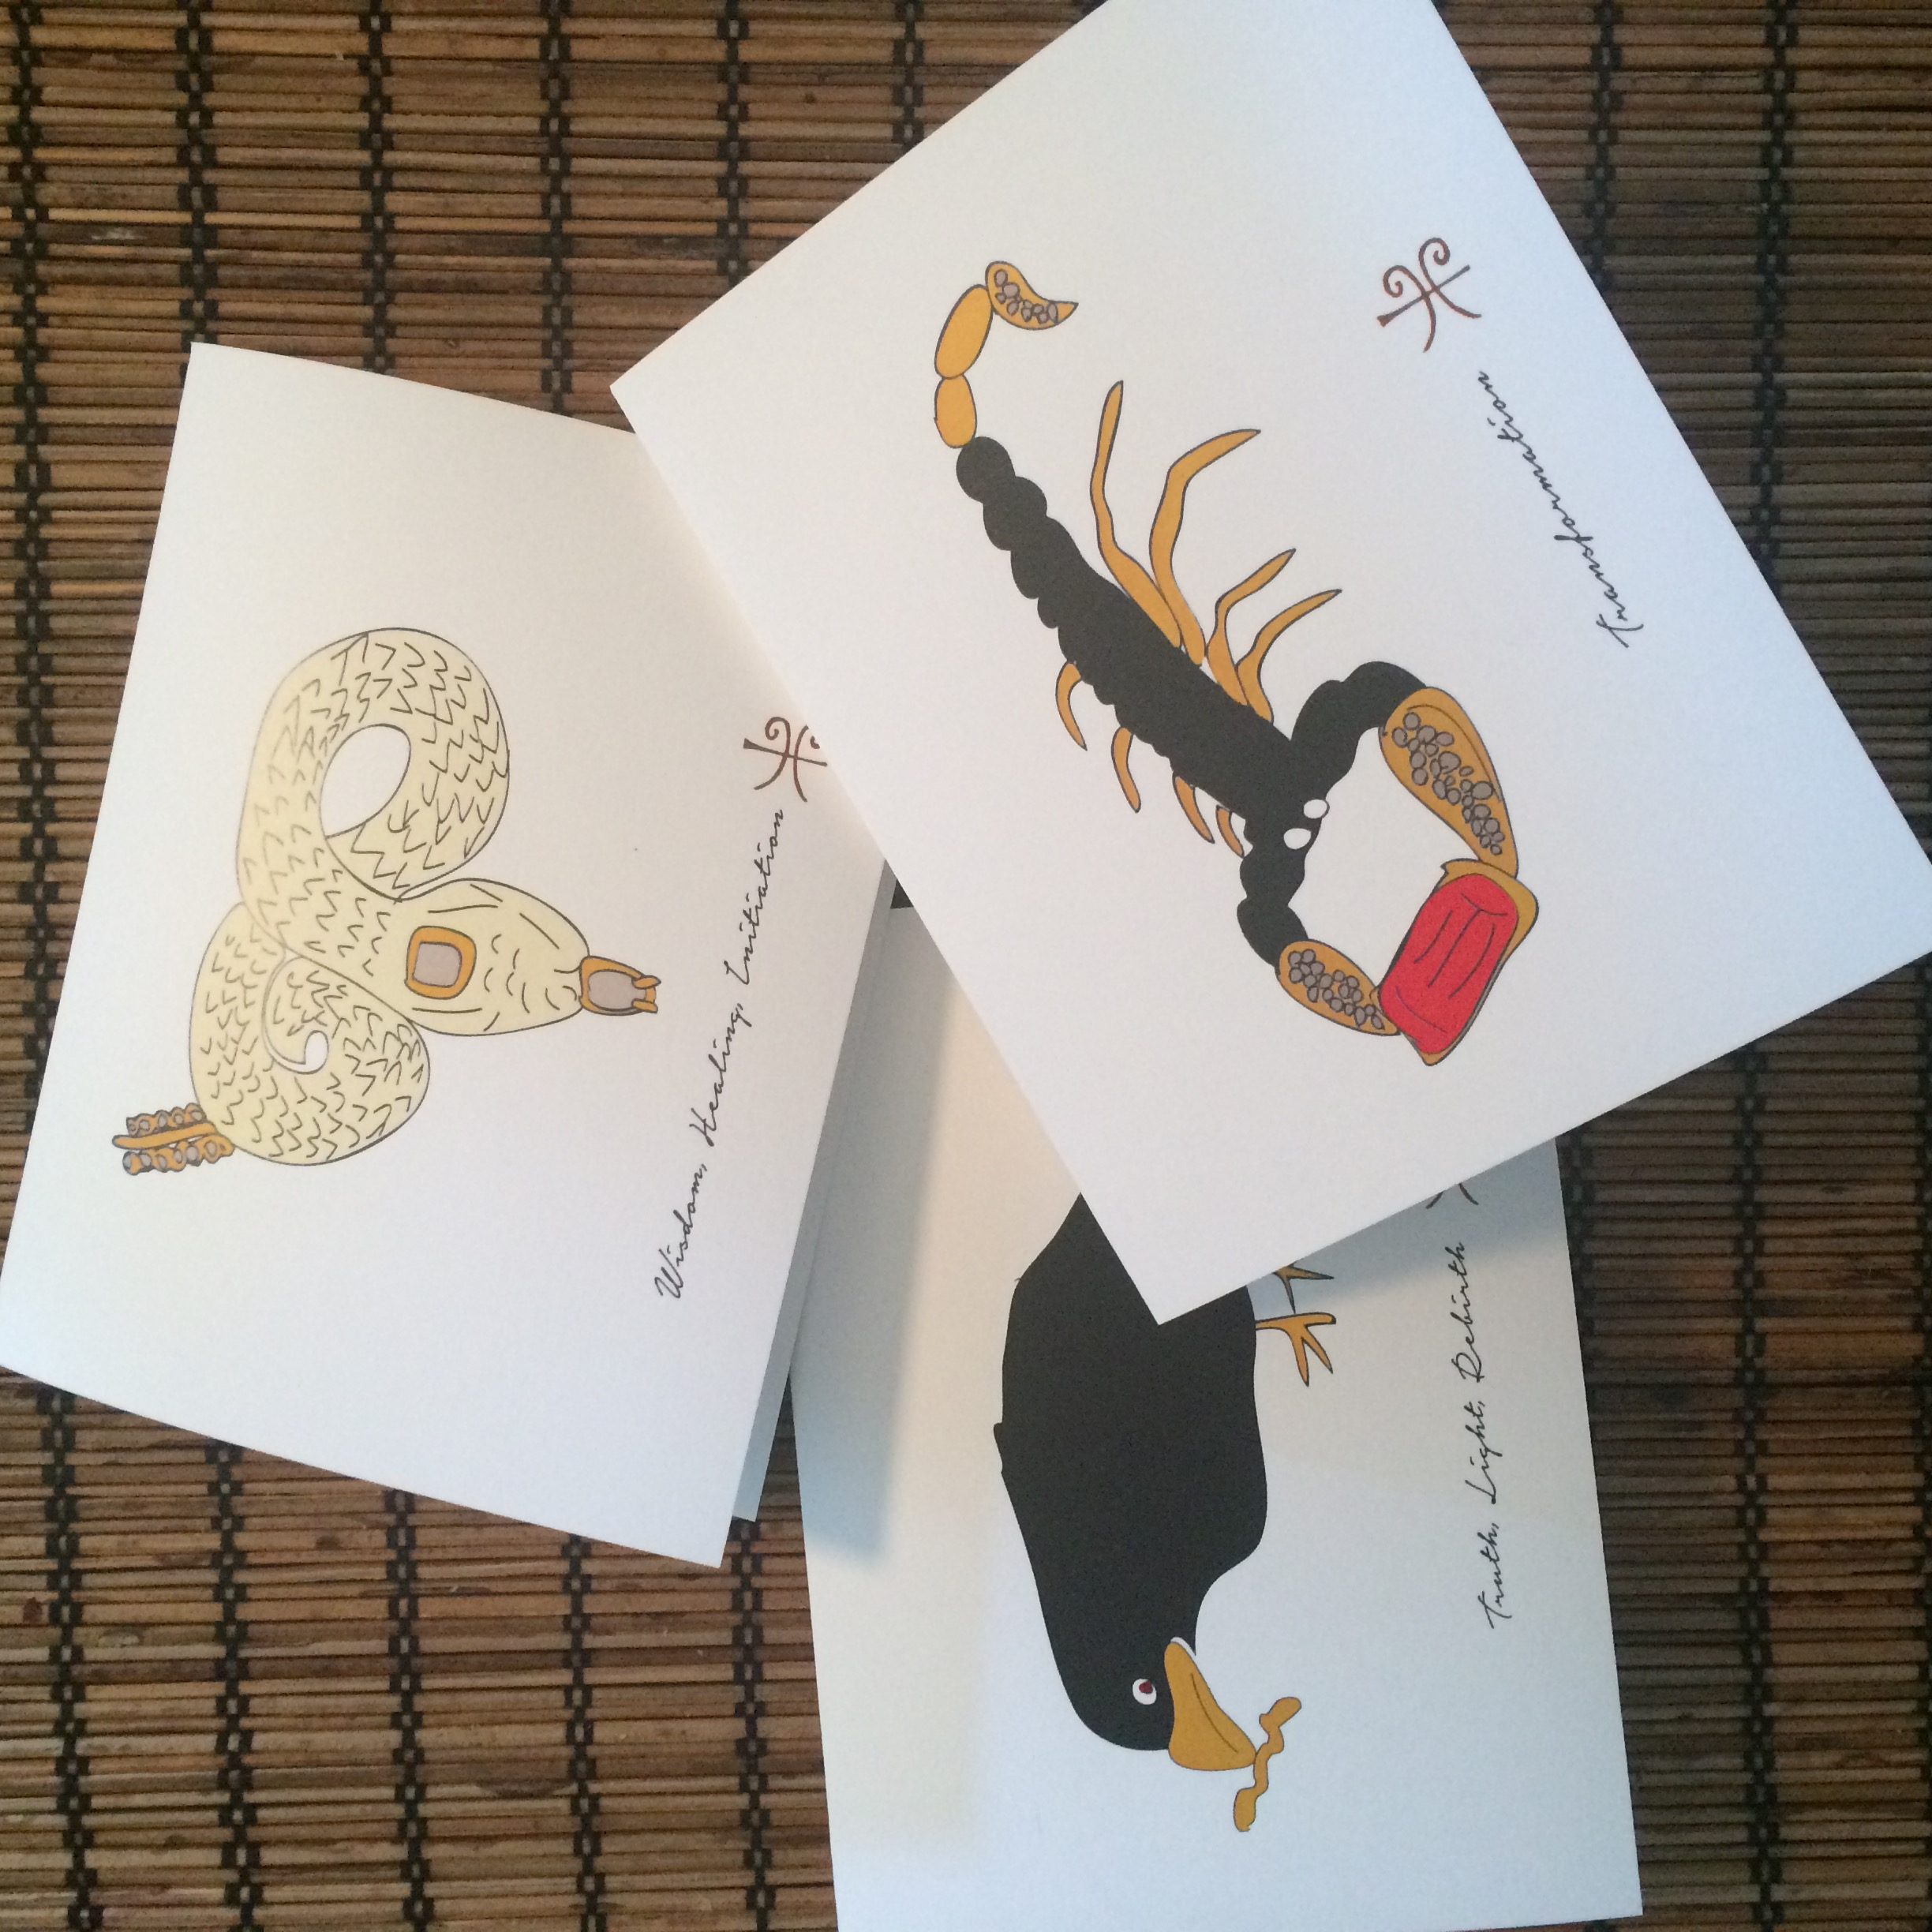 custom-illustrated-greeting-cards-spirit-animals-kbrunini.png